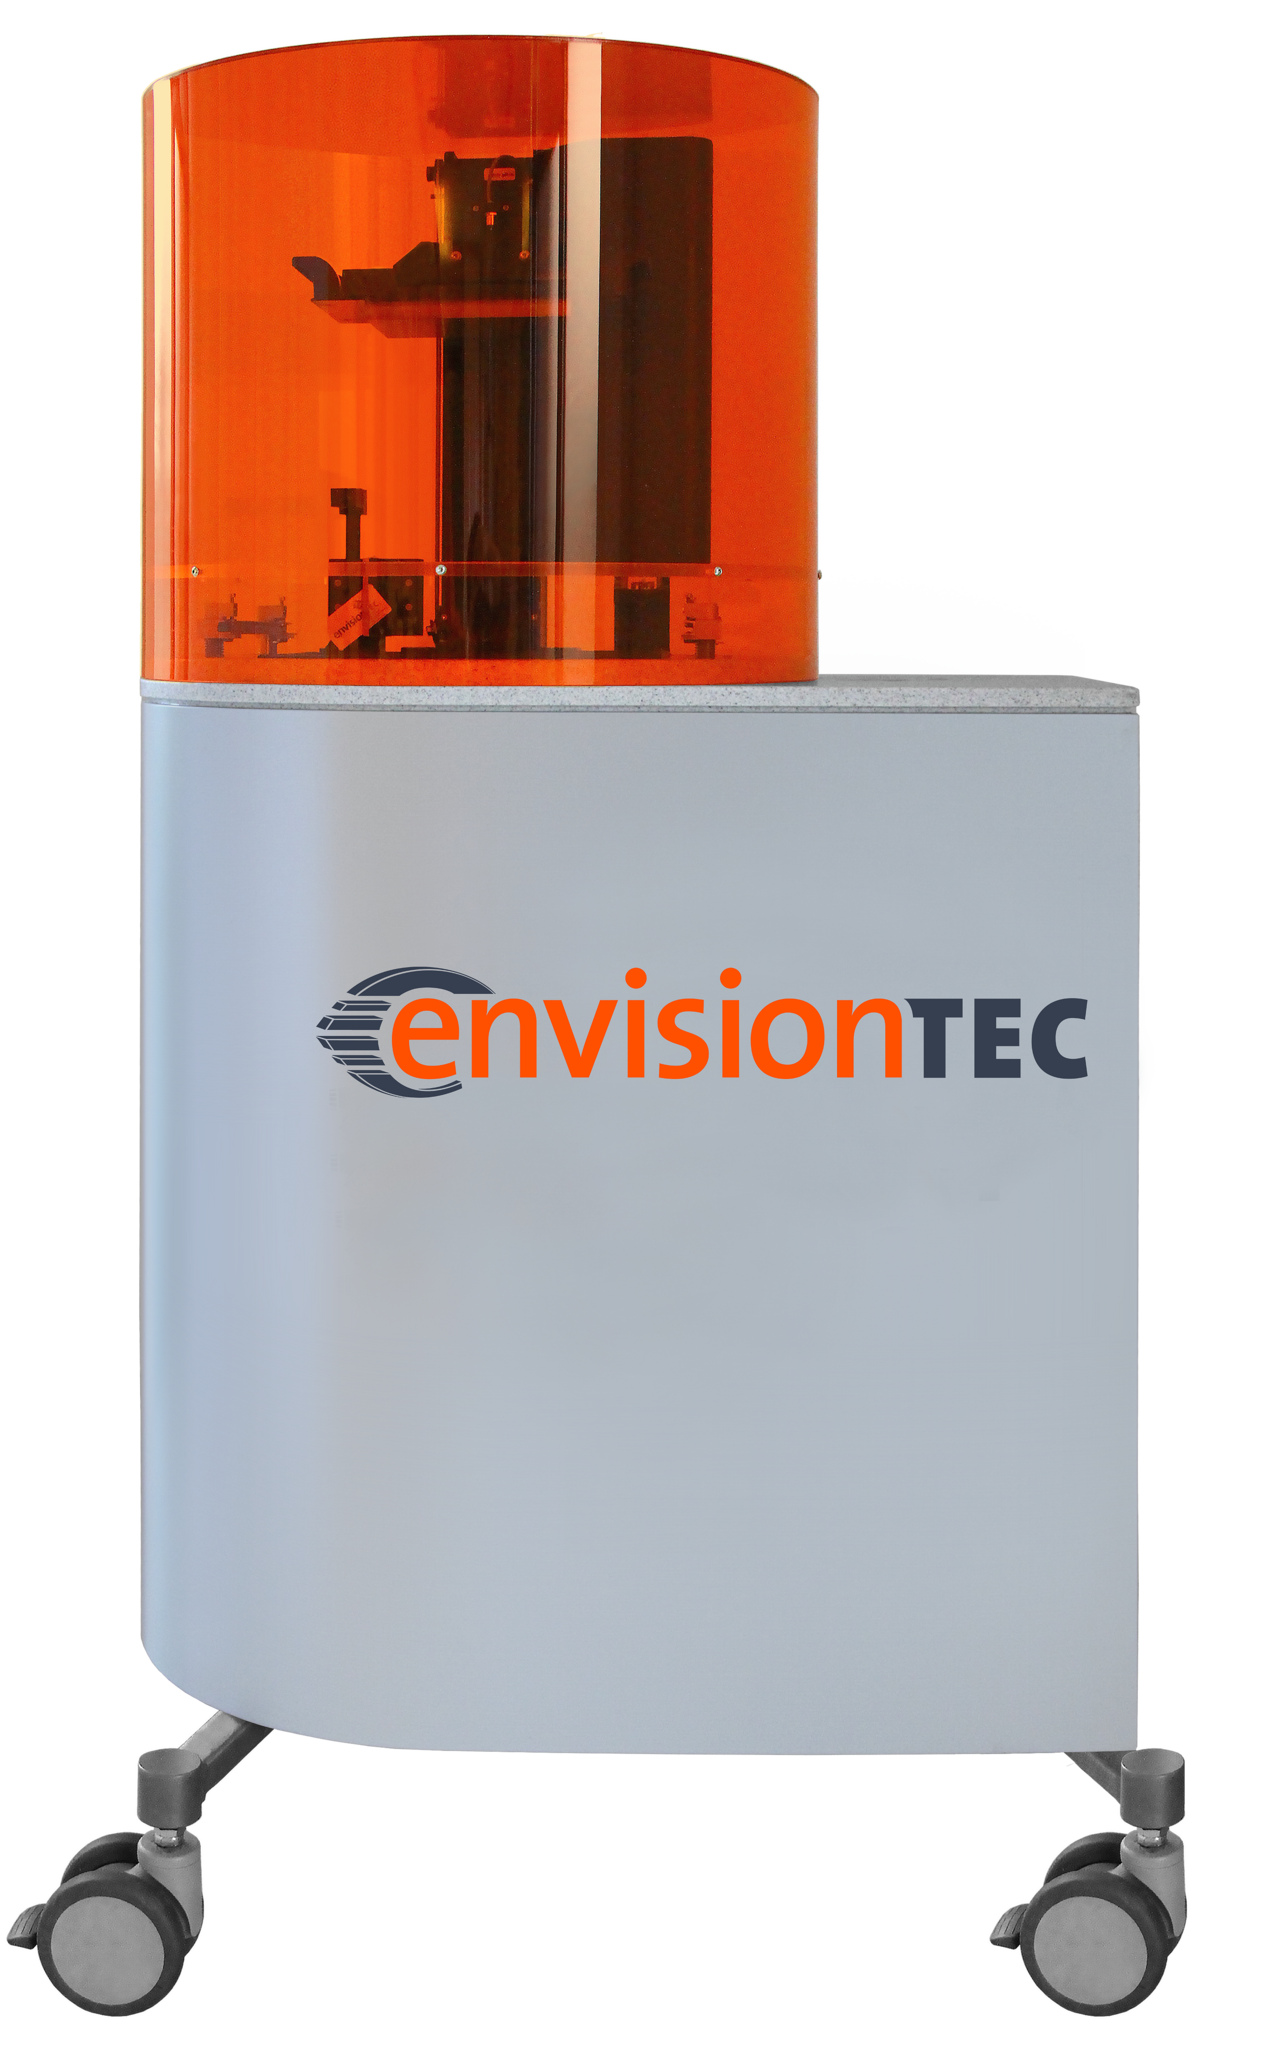 EnvisionTEC's Perfactory 3 Digital She...